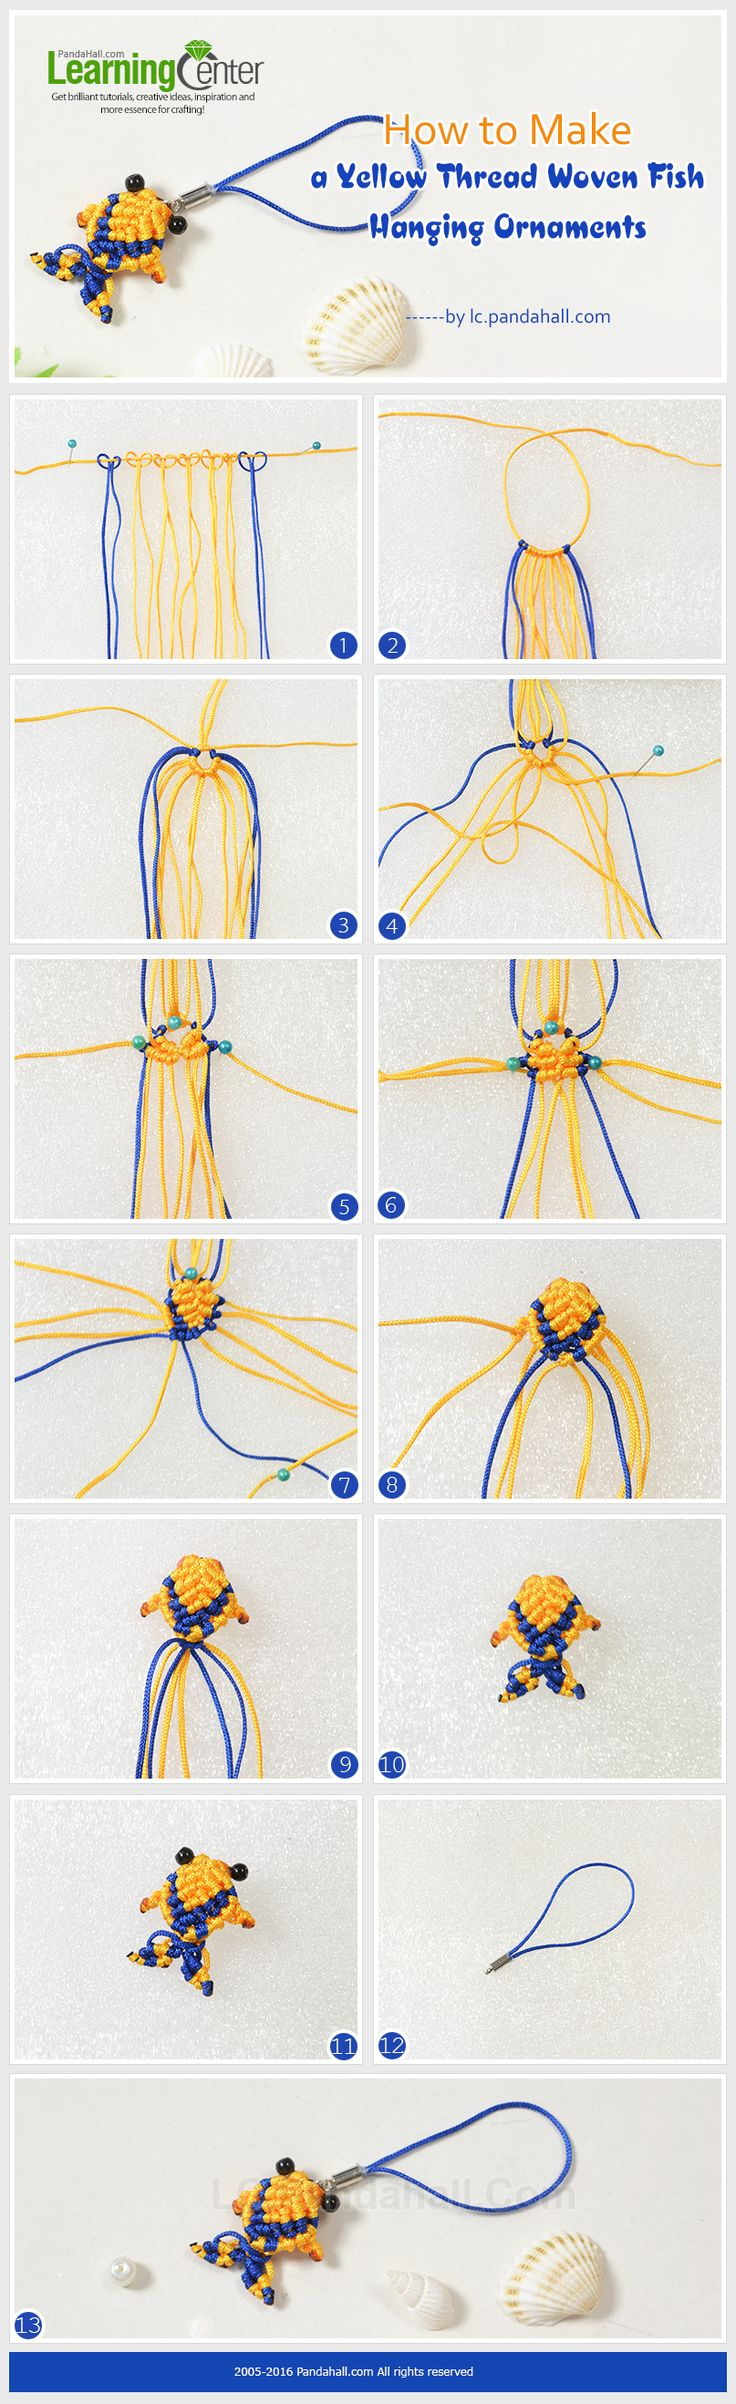 Tutorial on How to Make a Yellow Thread Woven Fish Hanging Ornaments from LC.Pandahall.com       #pandahall